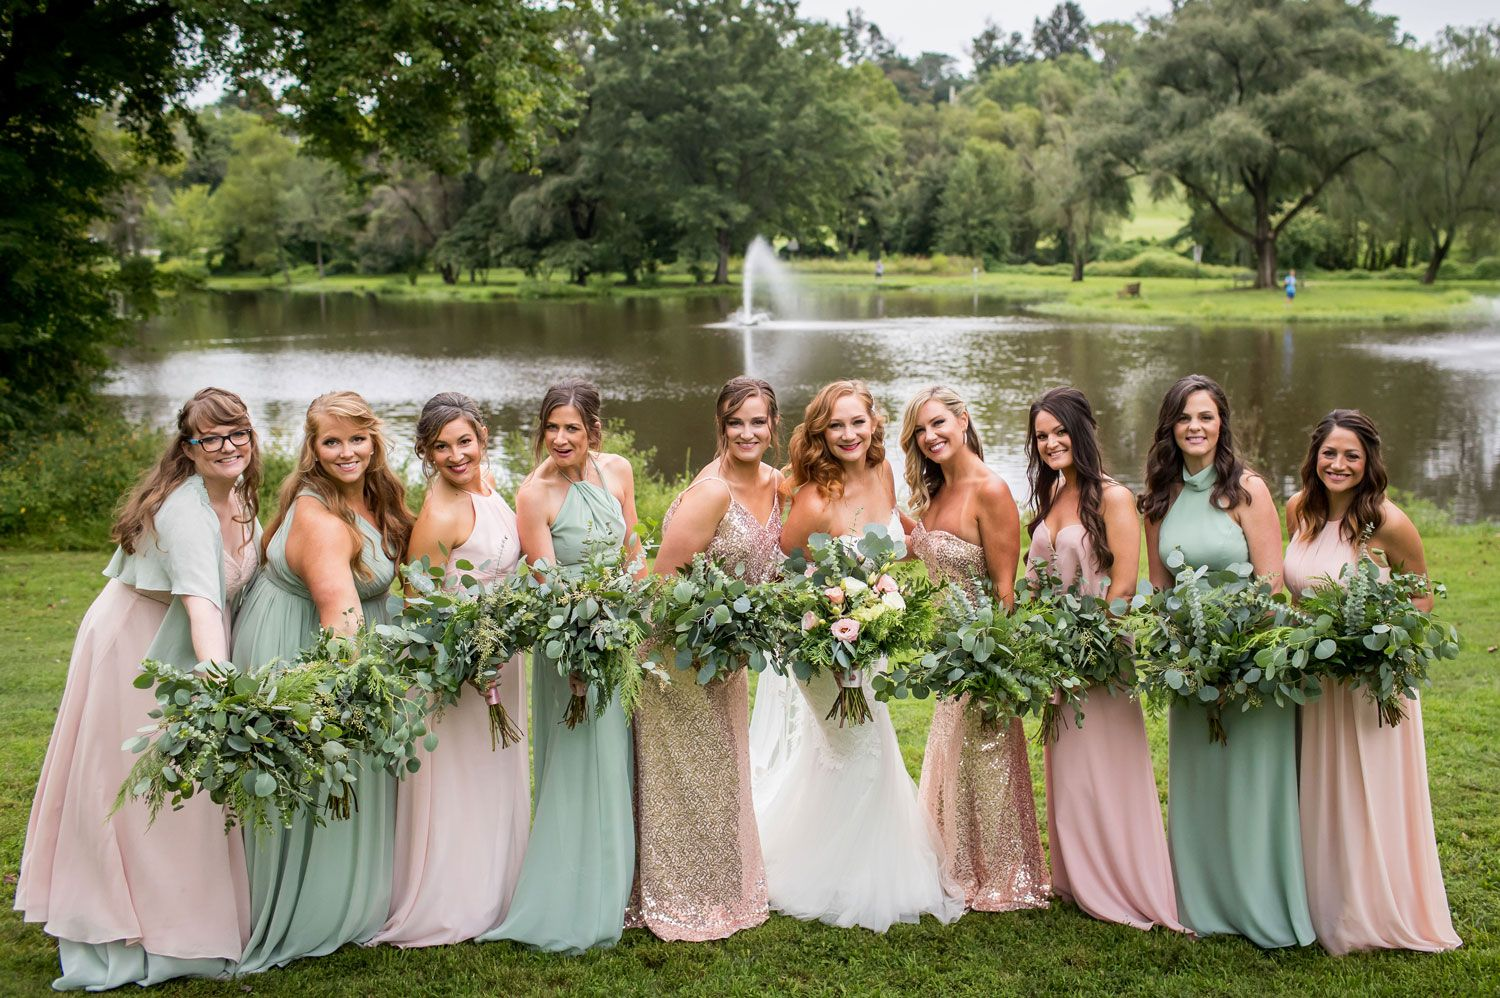 Mismatched Bridesmaid Dresses In Blush Pink And Sage Green Something Unique Sage Green Bridesmaid Dress Blush Pink Bridesmaid Dresses Sage Bridesmaid Dresses